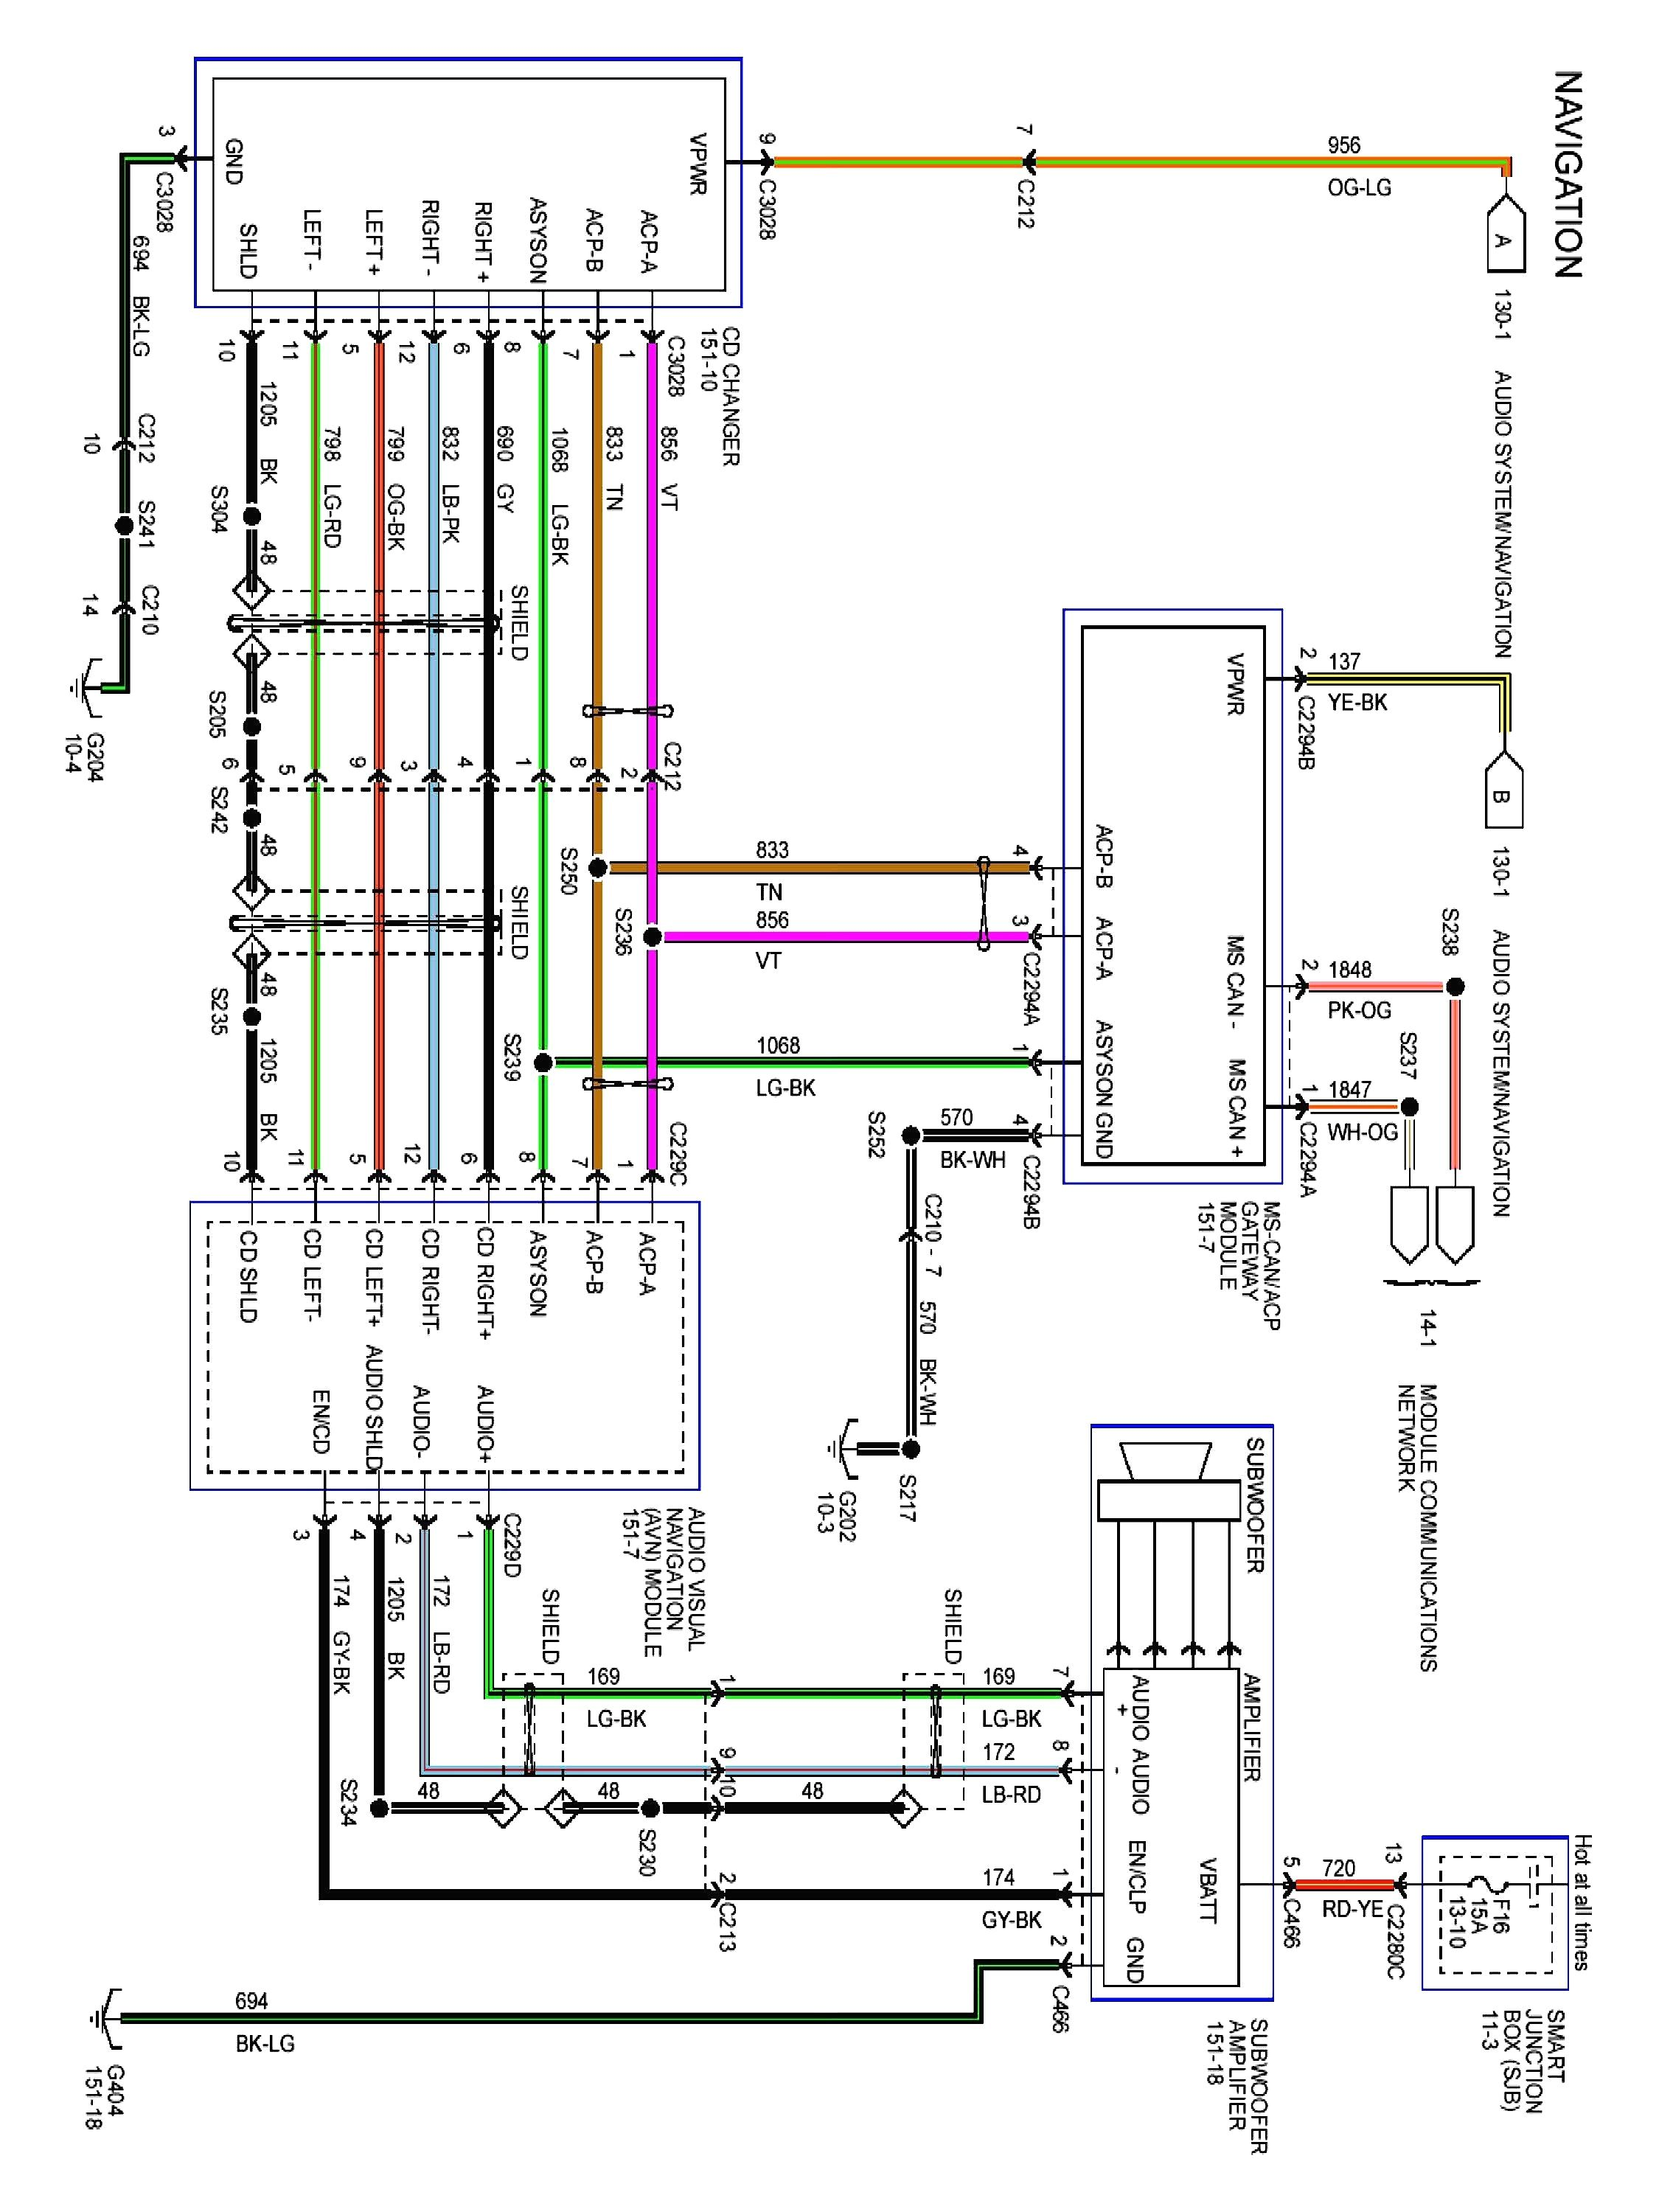 04 f250 super duty wiring diagram - wiring diagram log trace-build-a -  trace-build-a.superpolobio.it  superpolobio.it